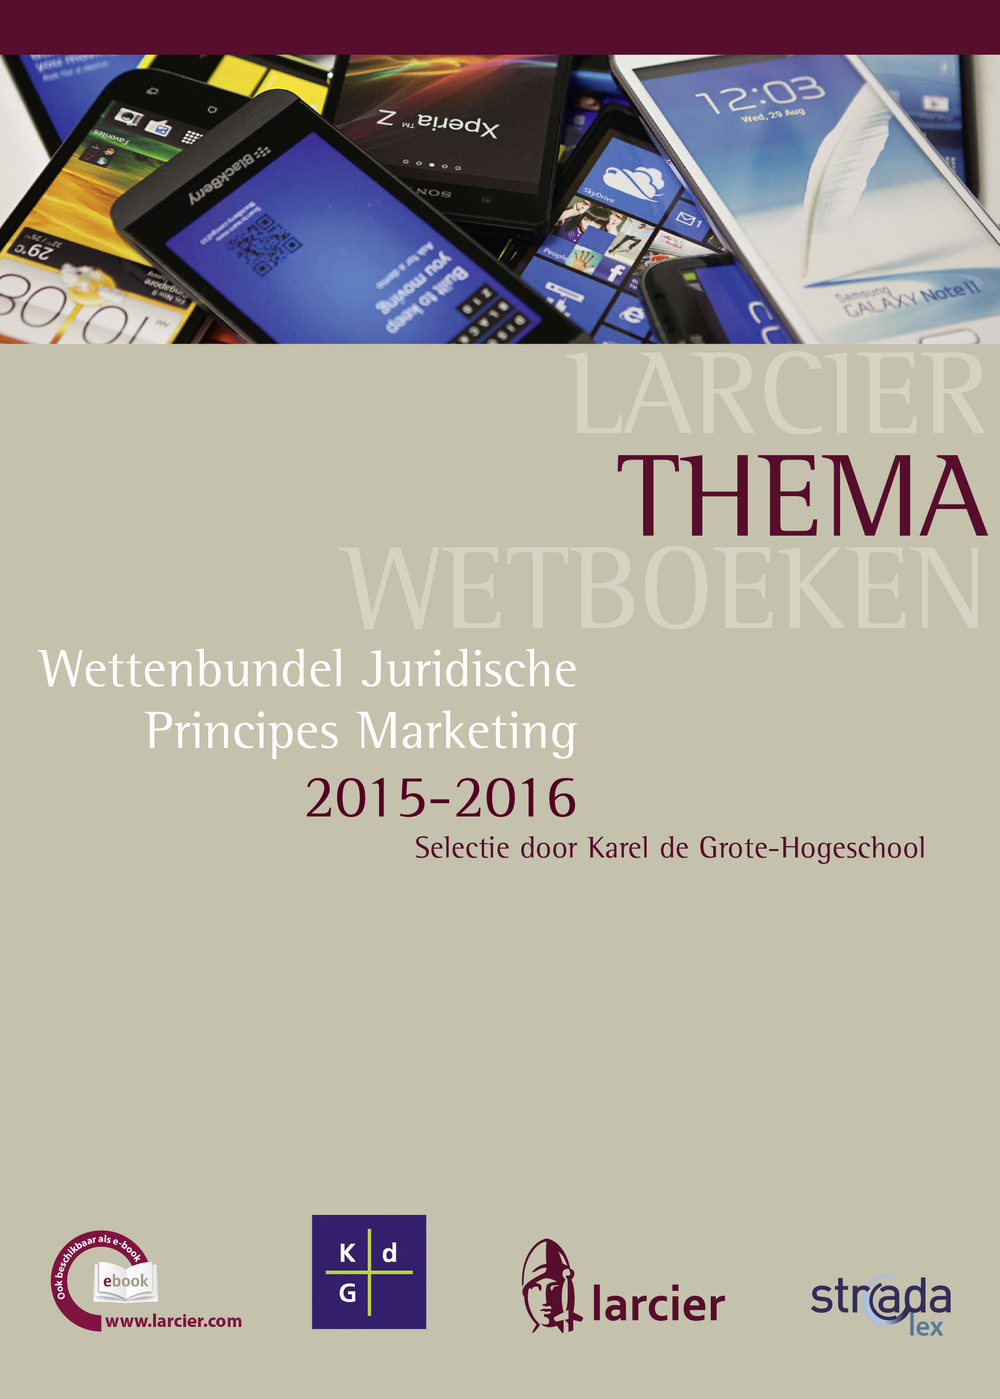 Wettenbundel juridische principes marketing